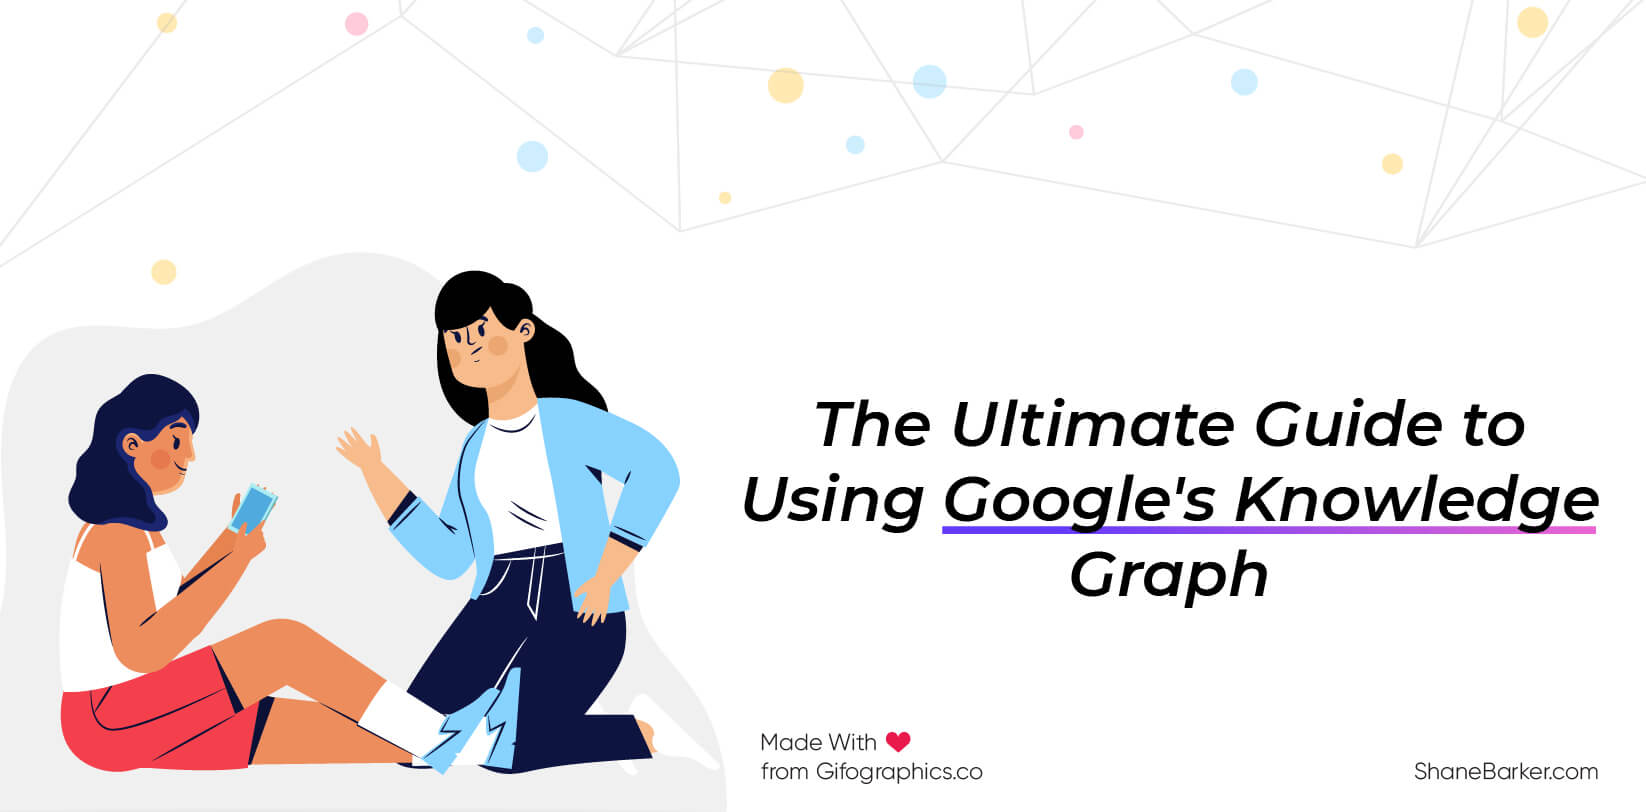 The Ultimate Guide to Using Google's Knowledge Graph